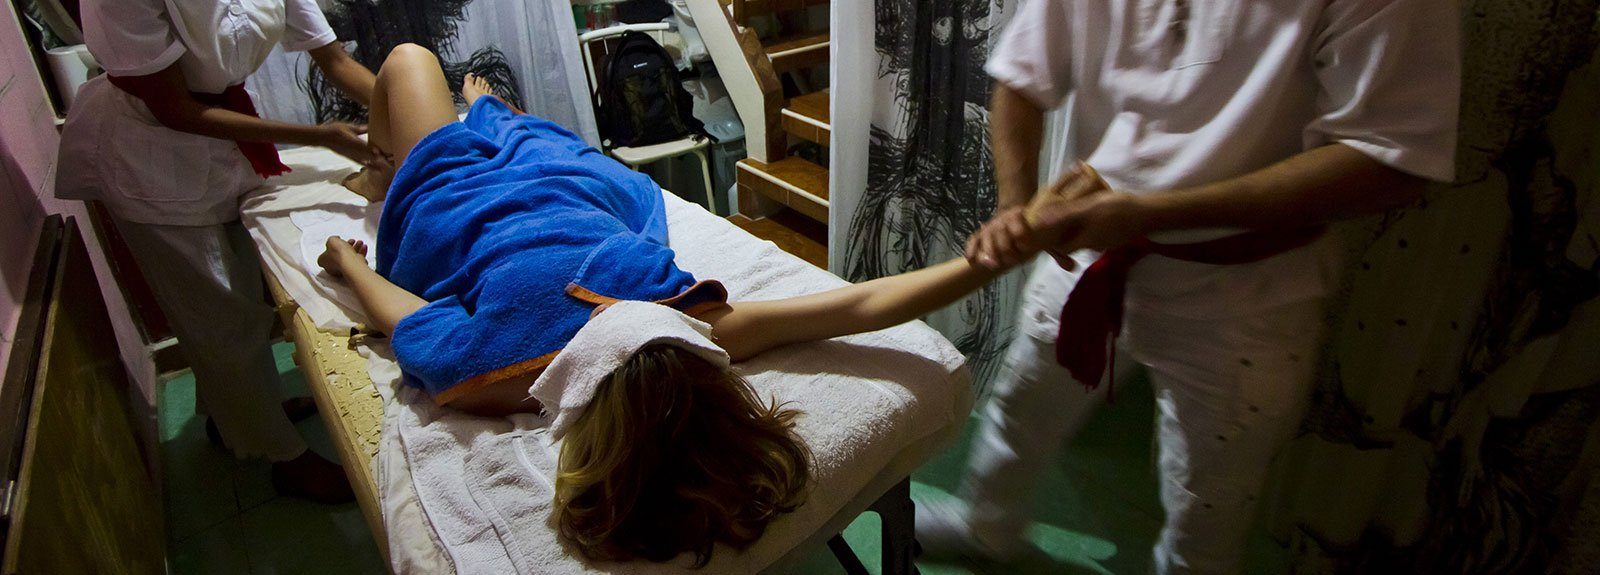 Man and woman dress in white making a massage to a girl cover with a blue towell